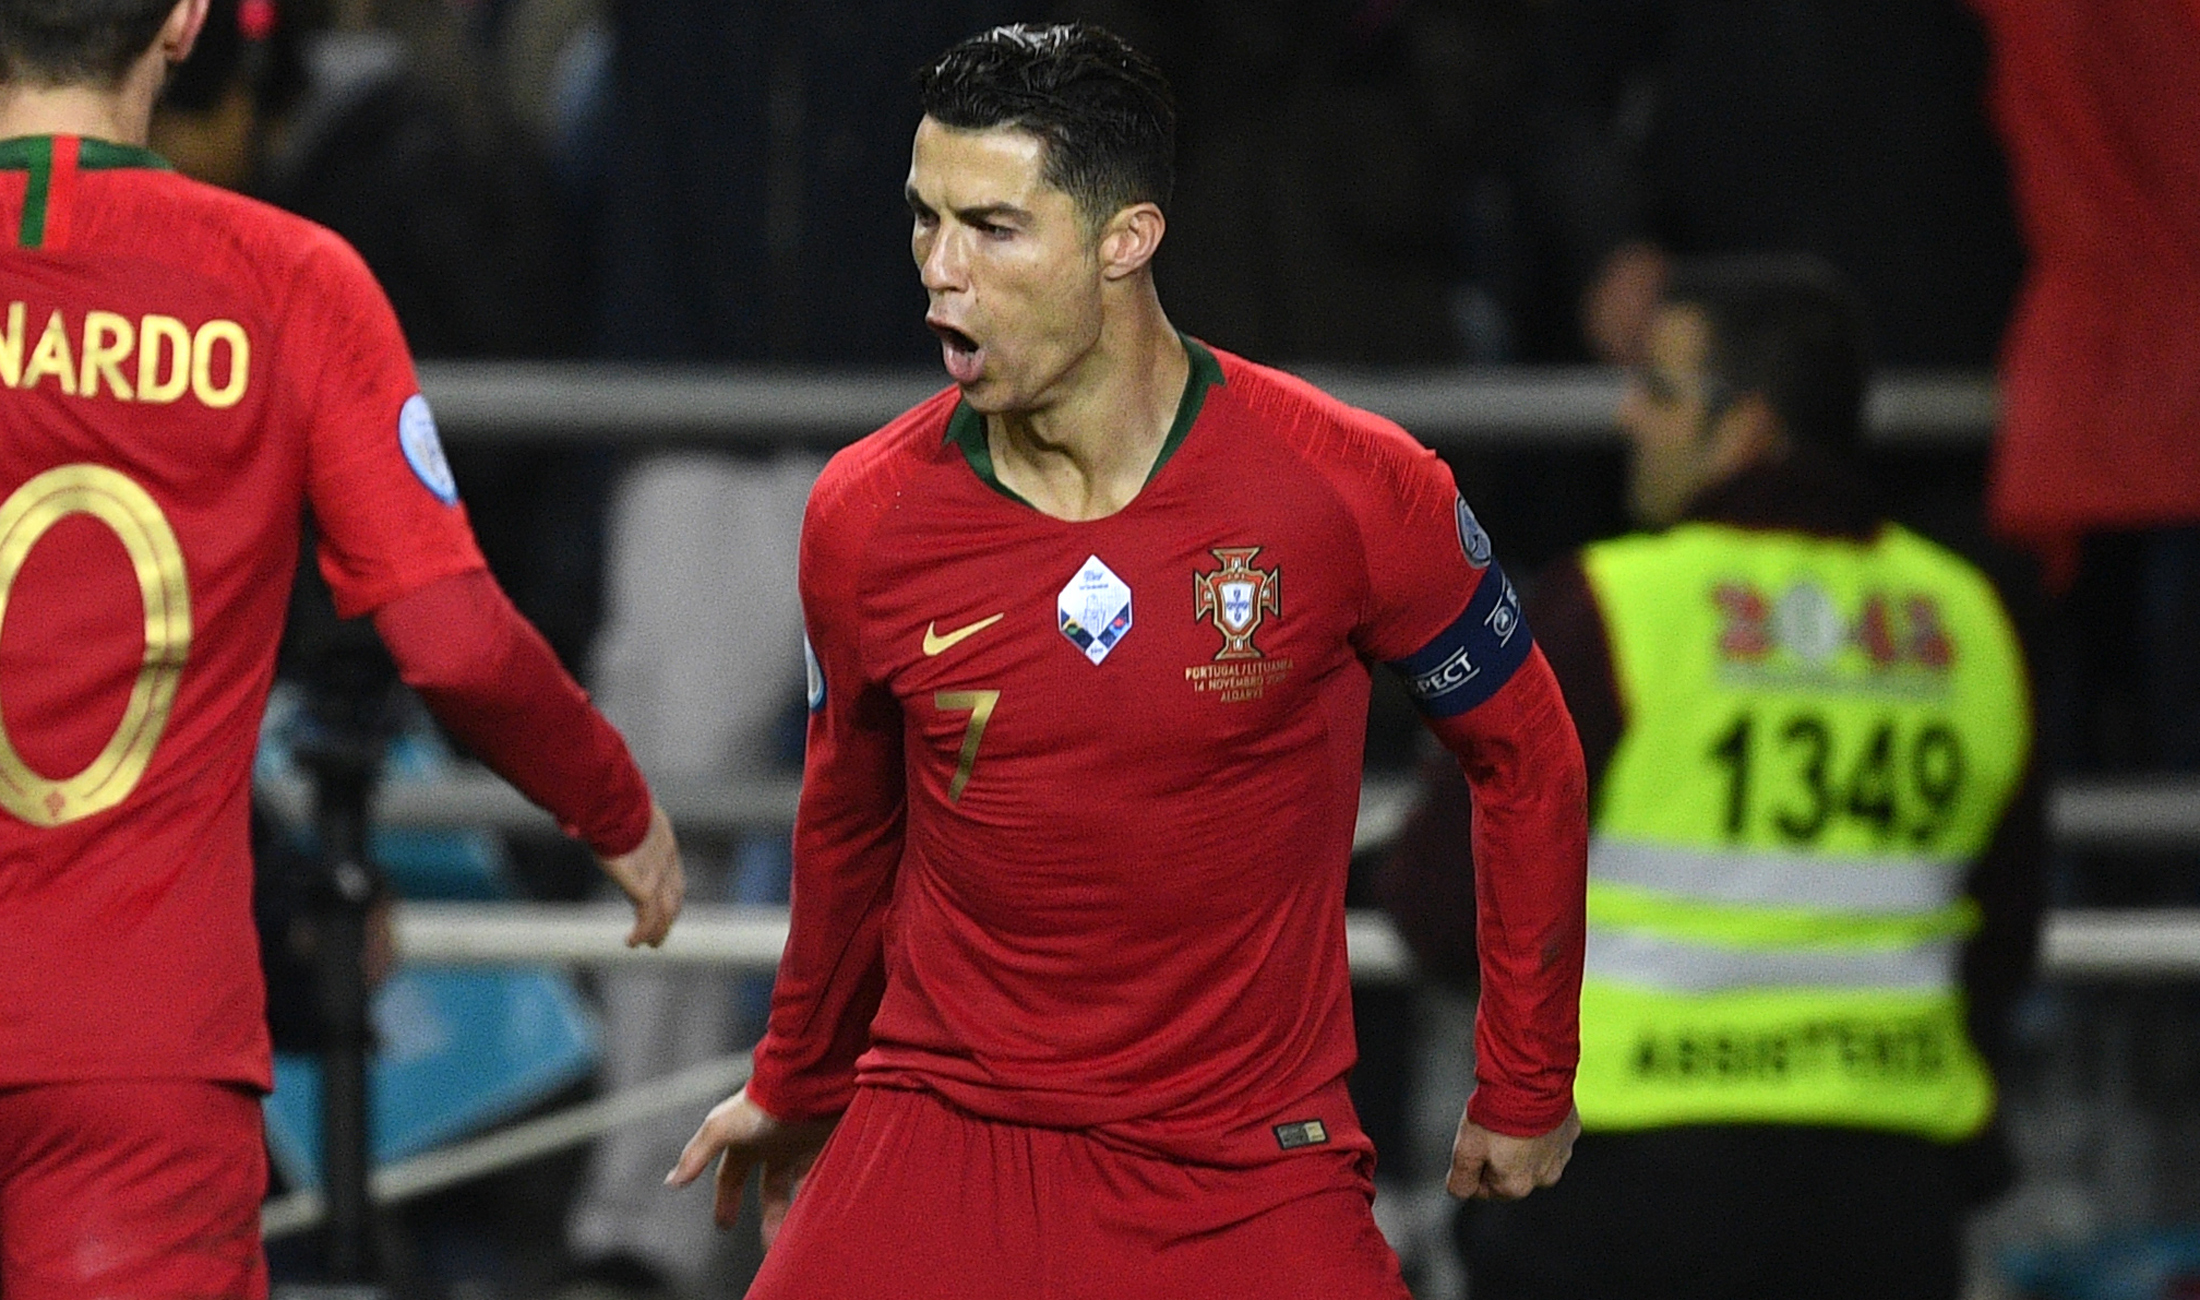 Ronaldo is the best in the world – Mario Rui